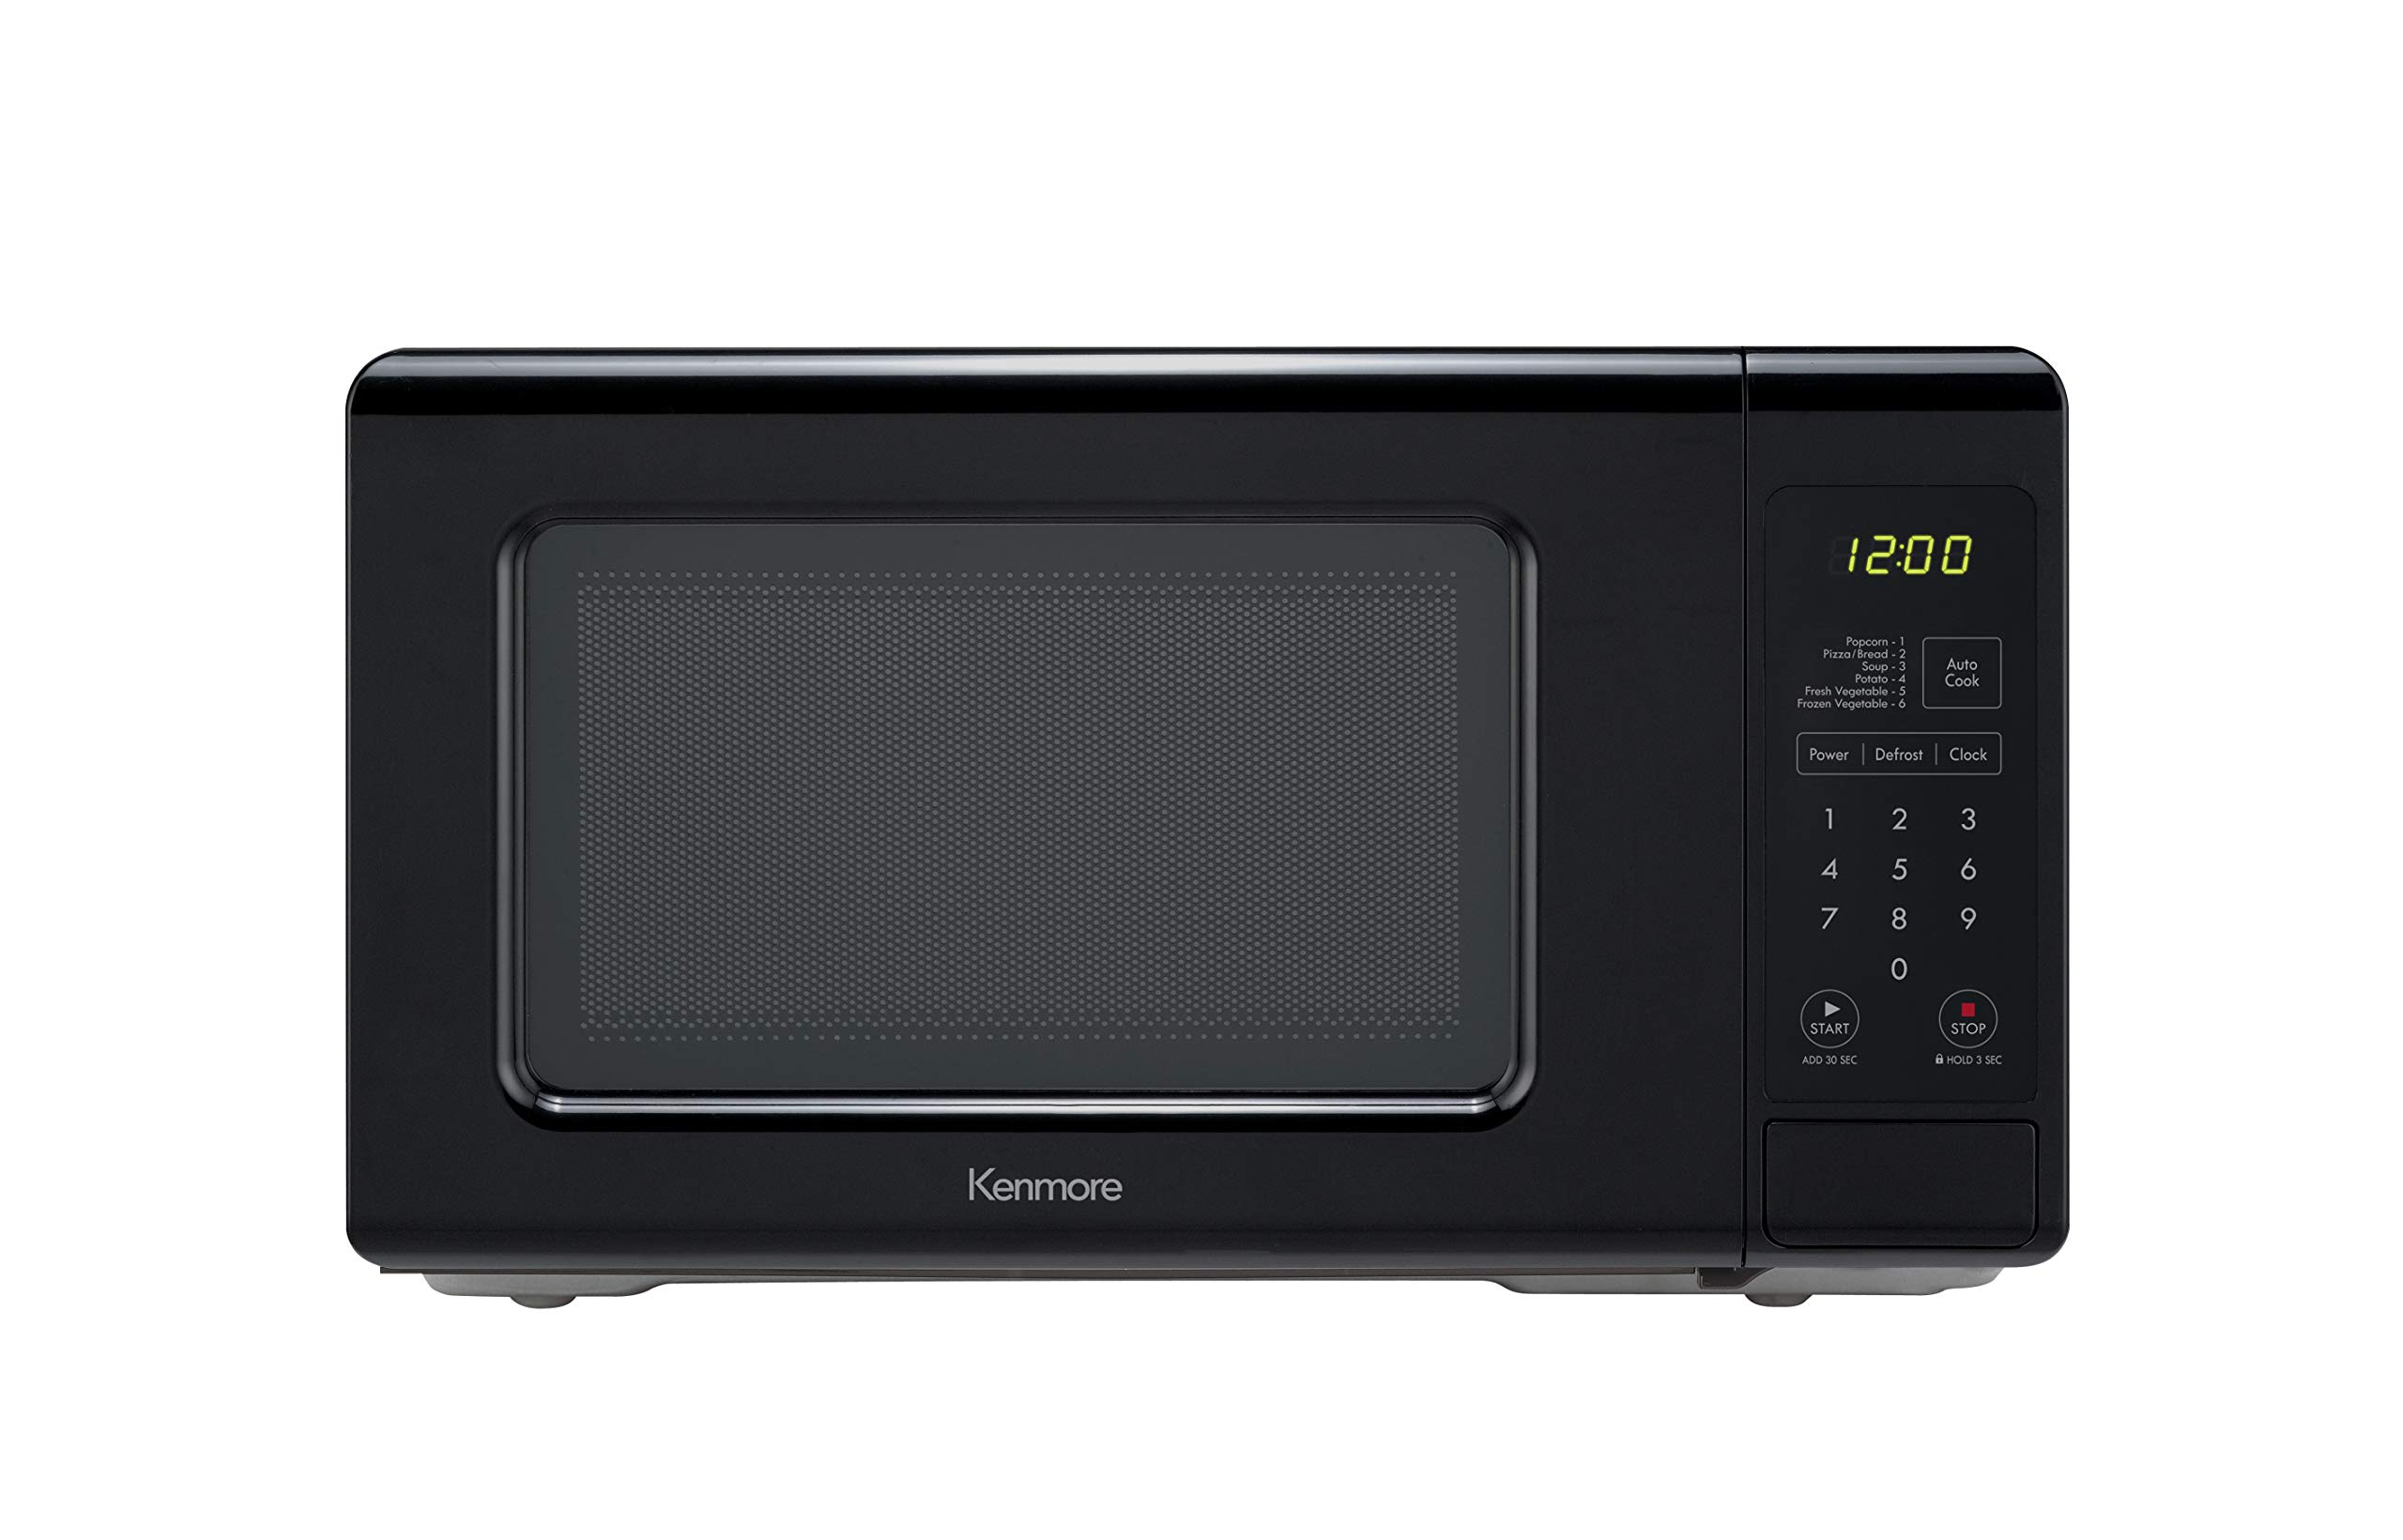 Kenmore 70729 0.7 cu. ft Compact 700 Watts 10 Power Settings, 6 Heating Presets, Removable Turntable, ADA Compliant Small Countertop Microwave, cu.ft, Black by Kenmore